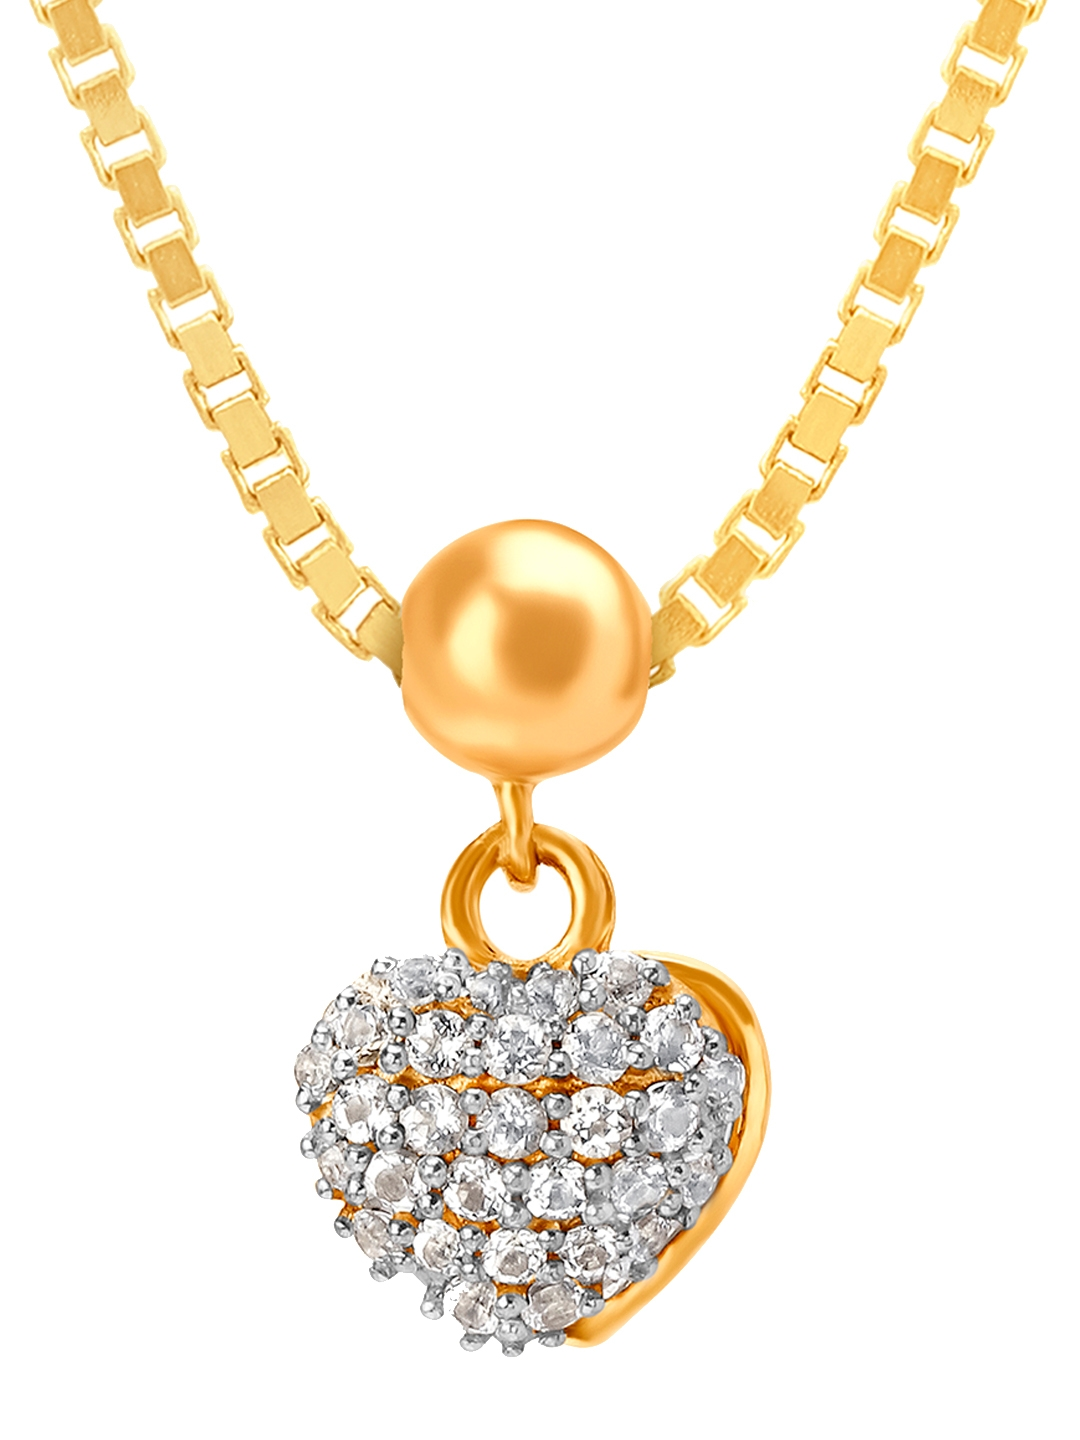 Mia by Tanishq 14KT Yellow Gold Heart Shaped Embellished Charm